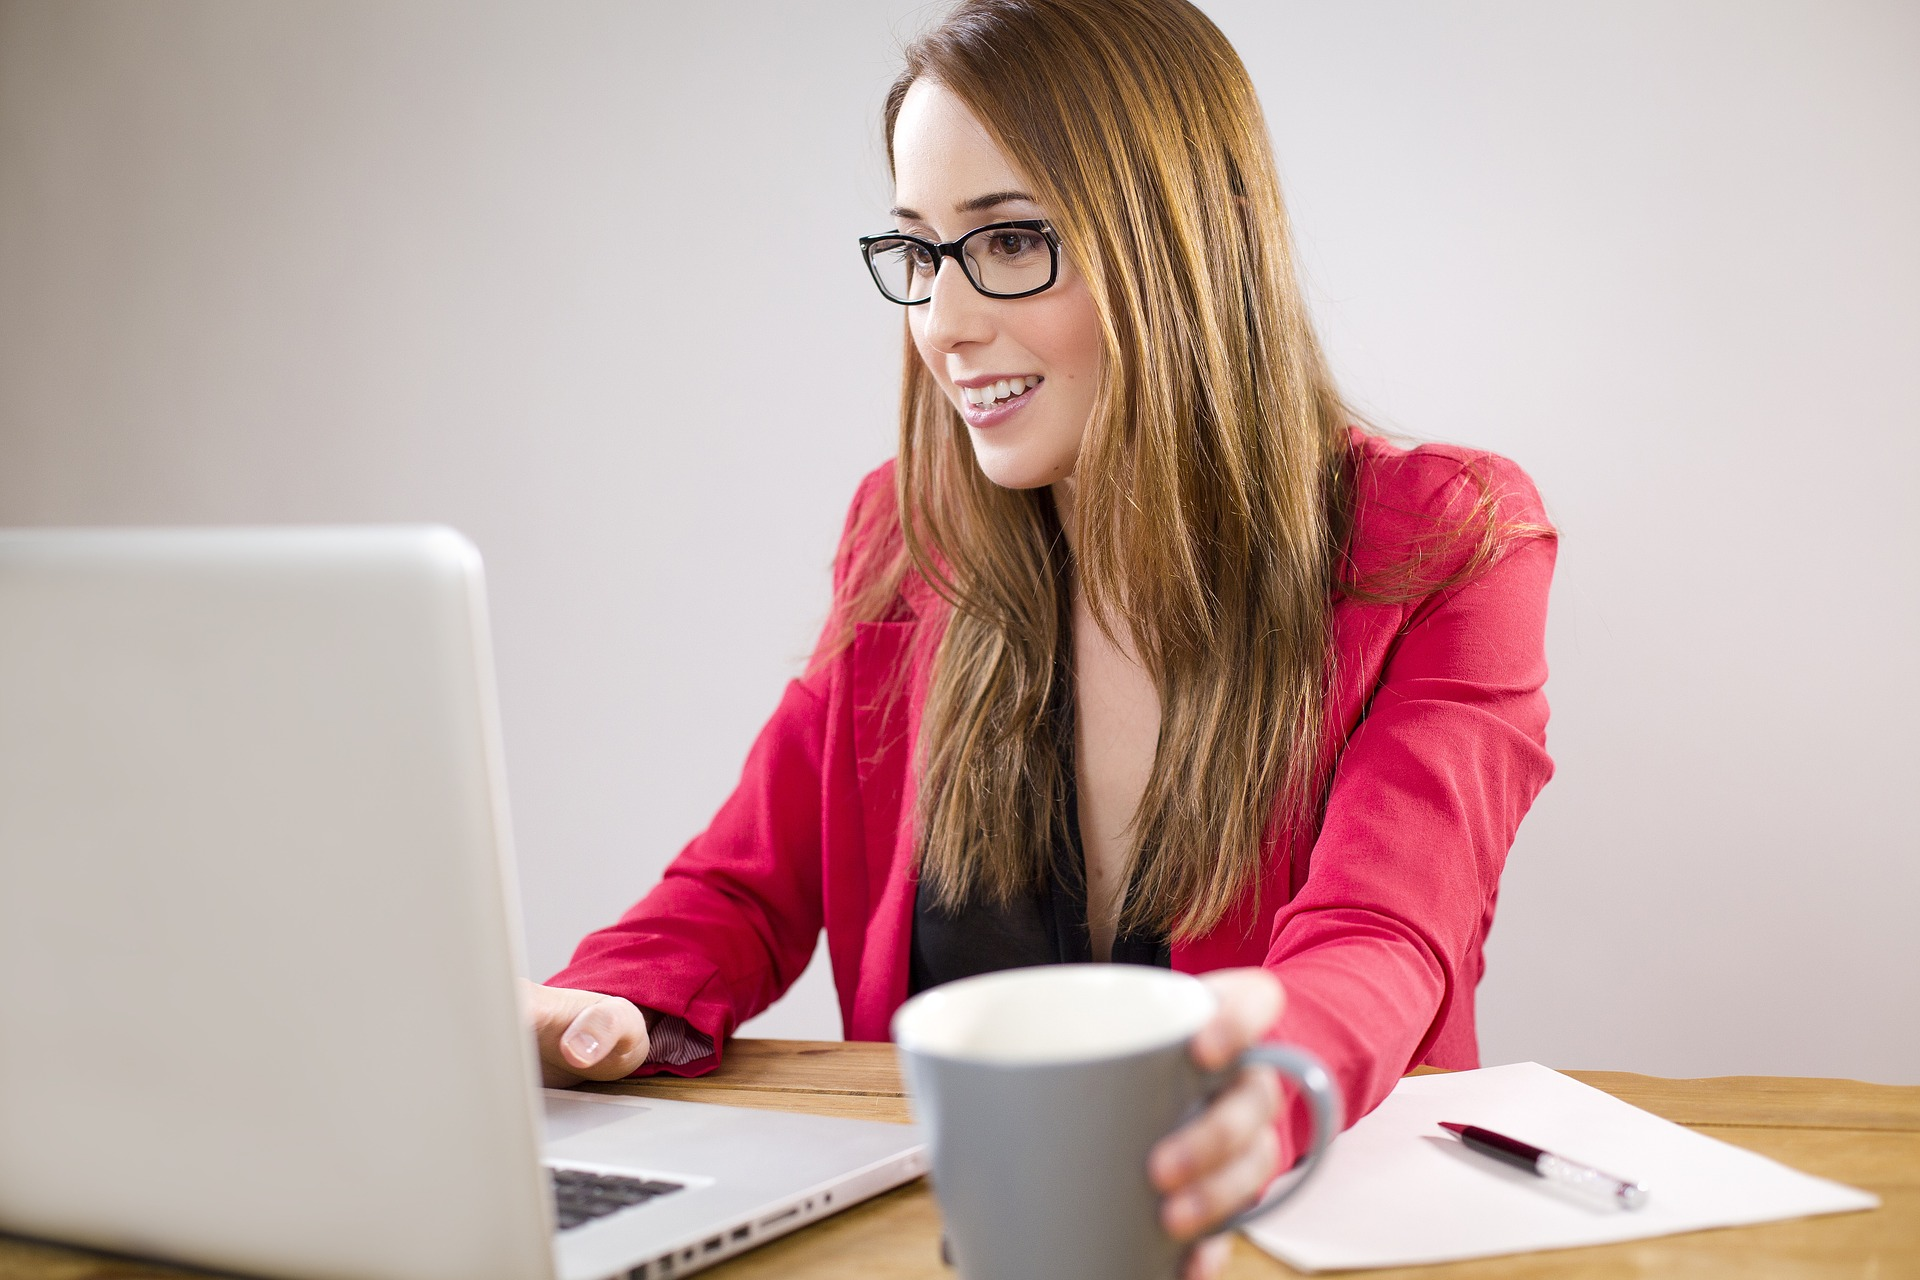 business woman wearing eye glasses and holding a cup